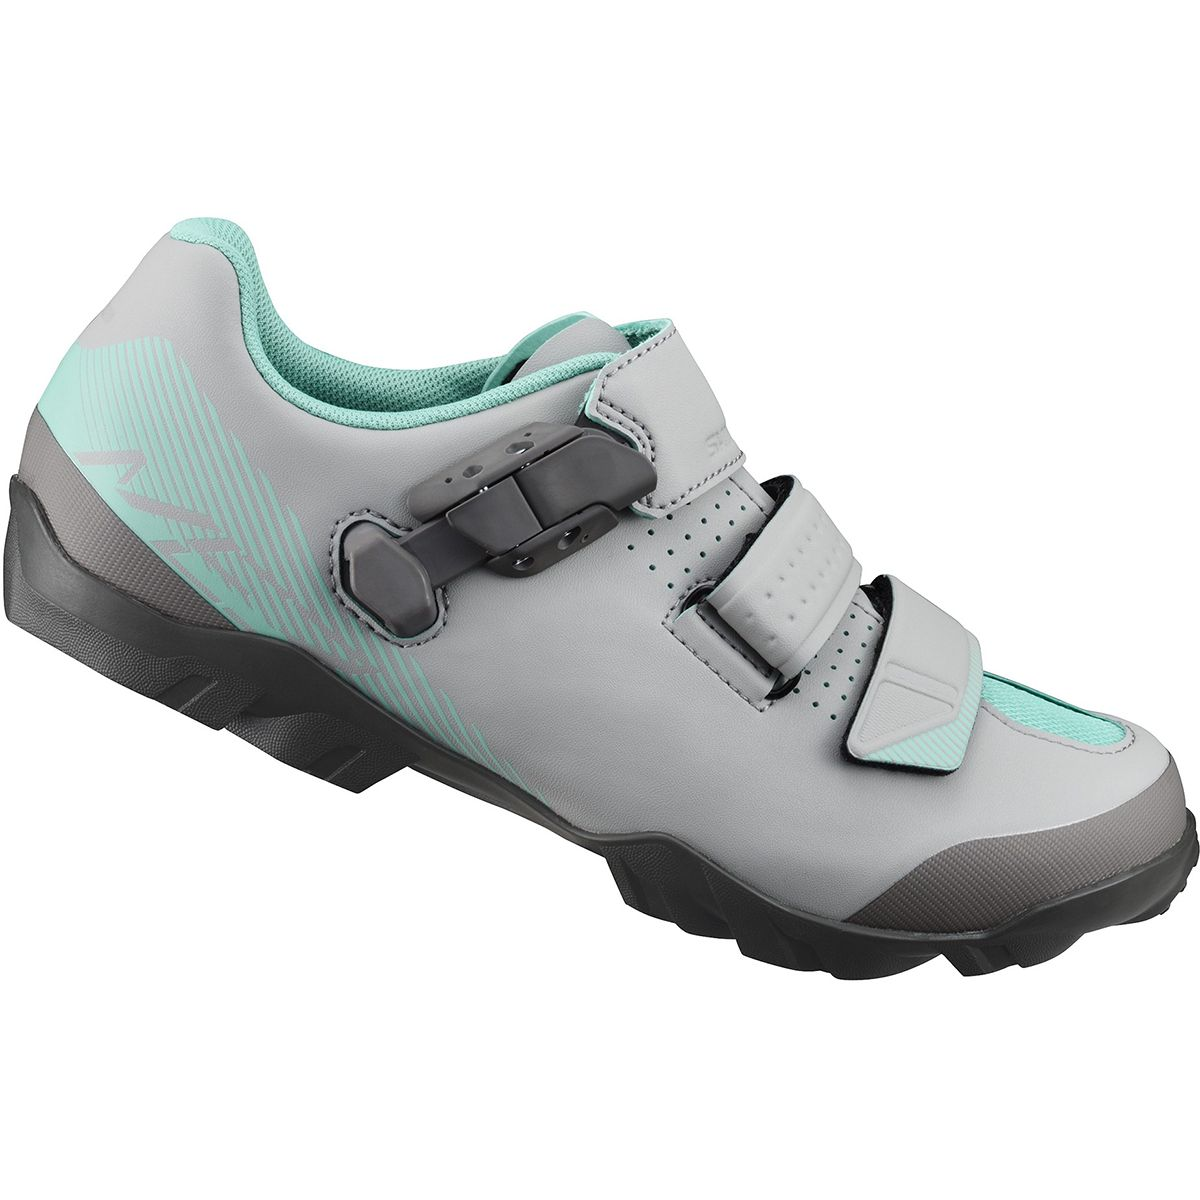 SH-ME3 women's MTB shoes